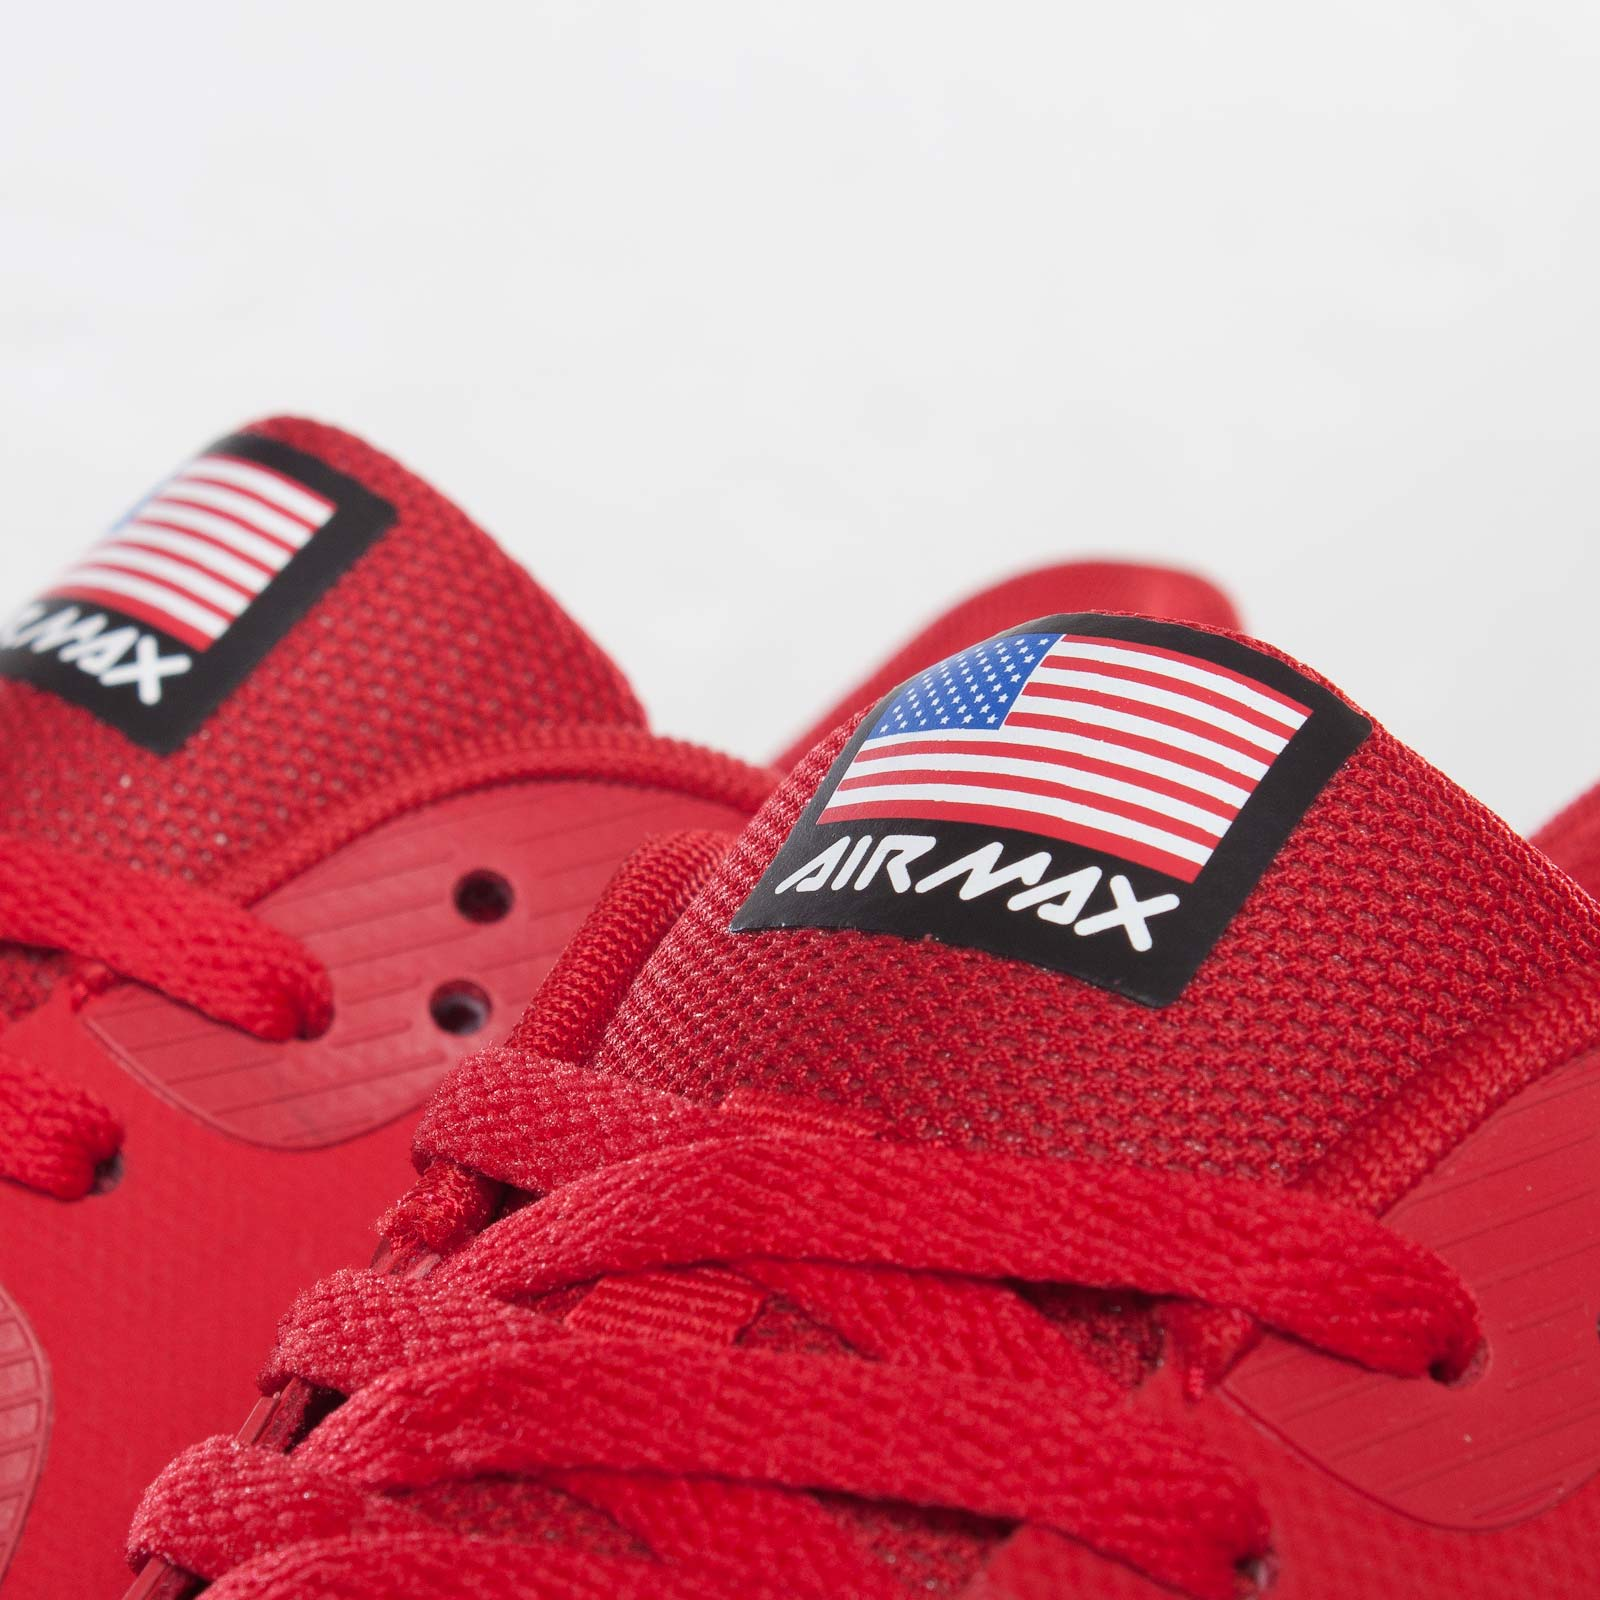 Nike Air Max 90 HYP QS 'Independence Day' Sport RedSport Red | eBay